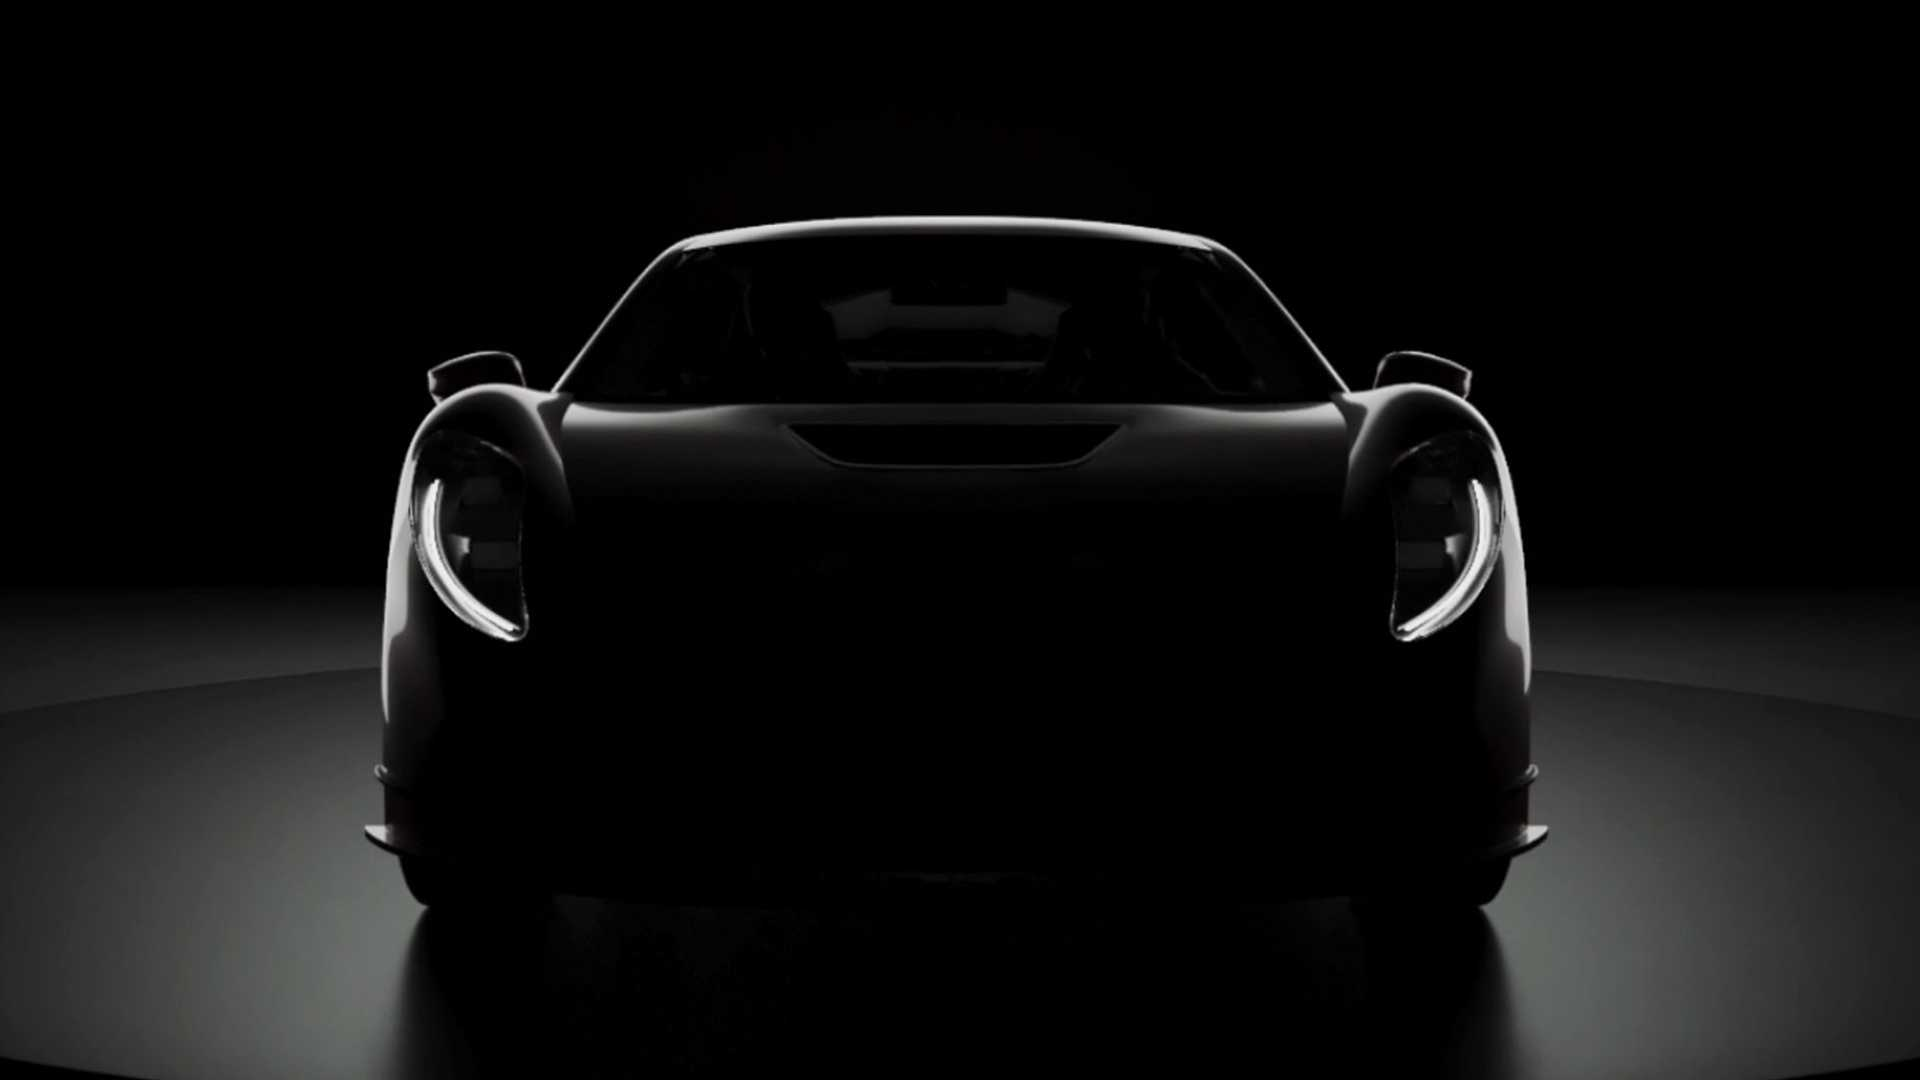 What you see here is the first teaser image of an Italian supercar built by Tacio Taraschi to pay respects to his late father, famous car constructor and racing driver Berardo Taraschi. The announcement is accompanied by photos of one of his works, the exotic Giaur 750 Champion Sport (see video).